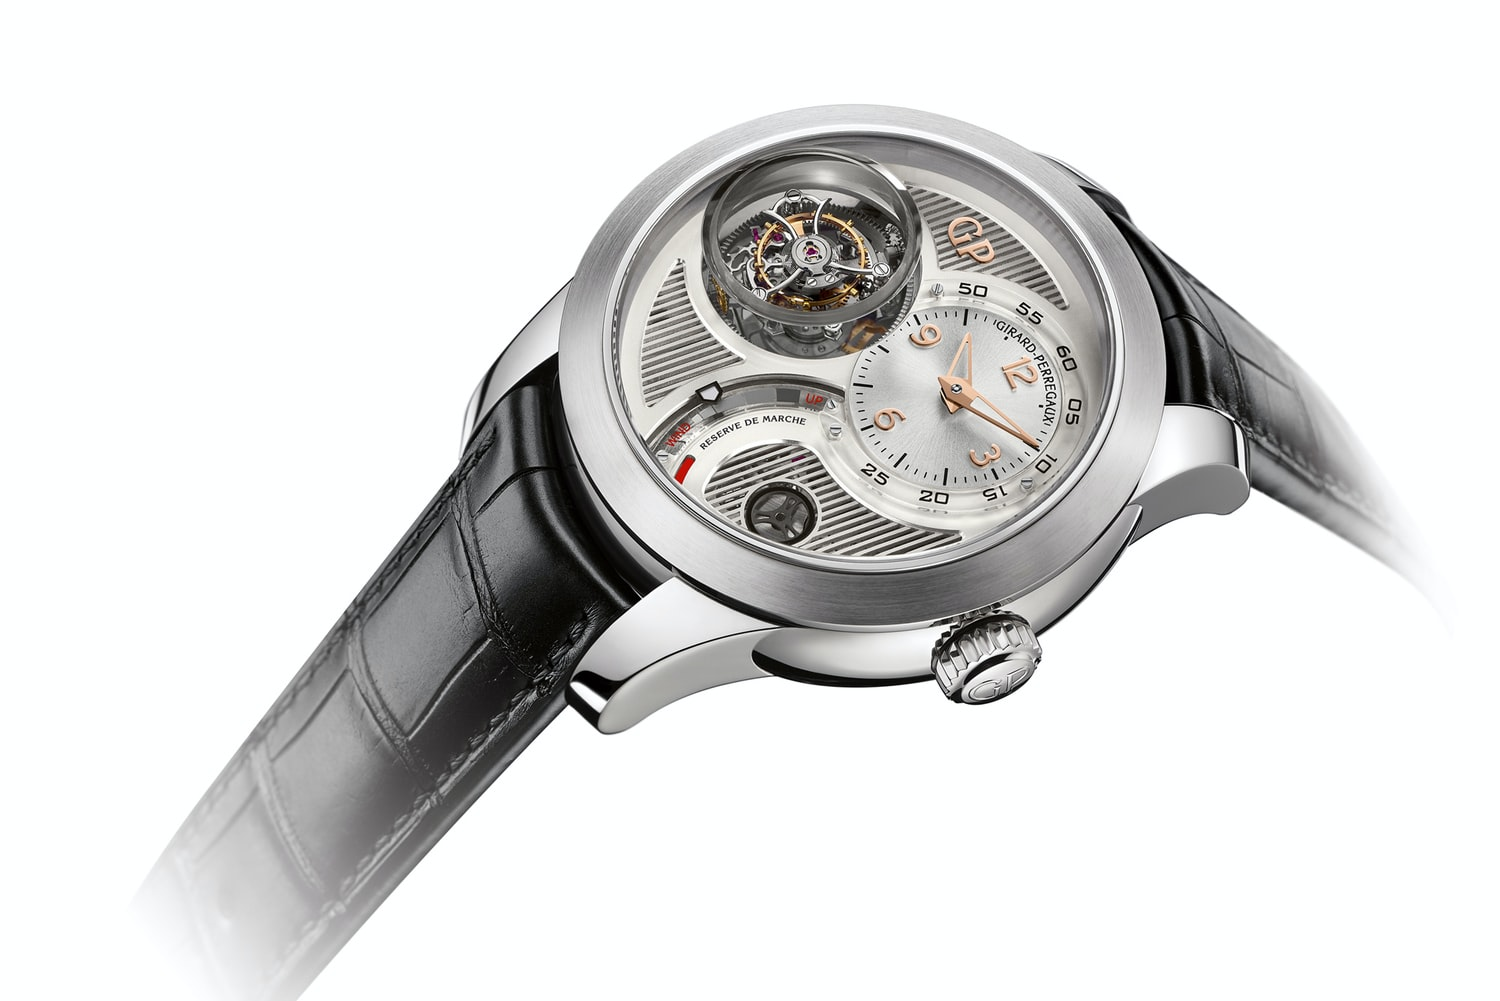 Introducing The Girard-Perregaux Tri-Axial Tourbillon In White Gold (Exclusive Pics)